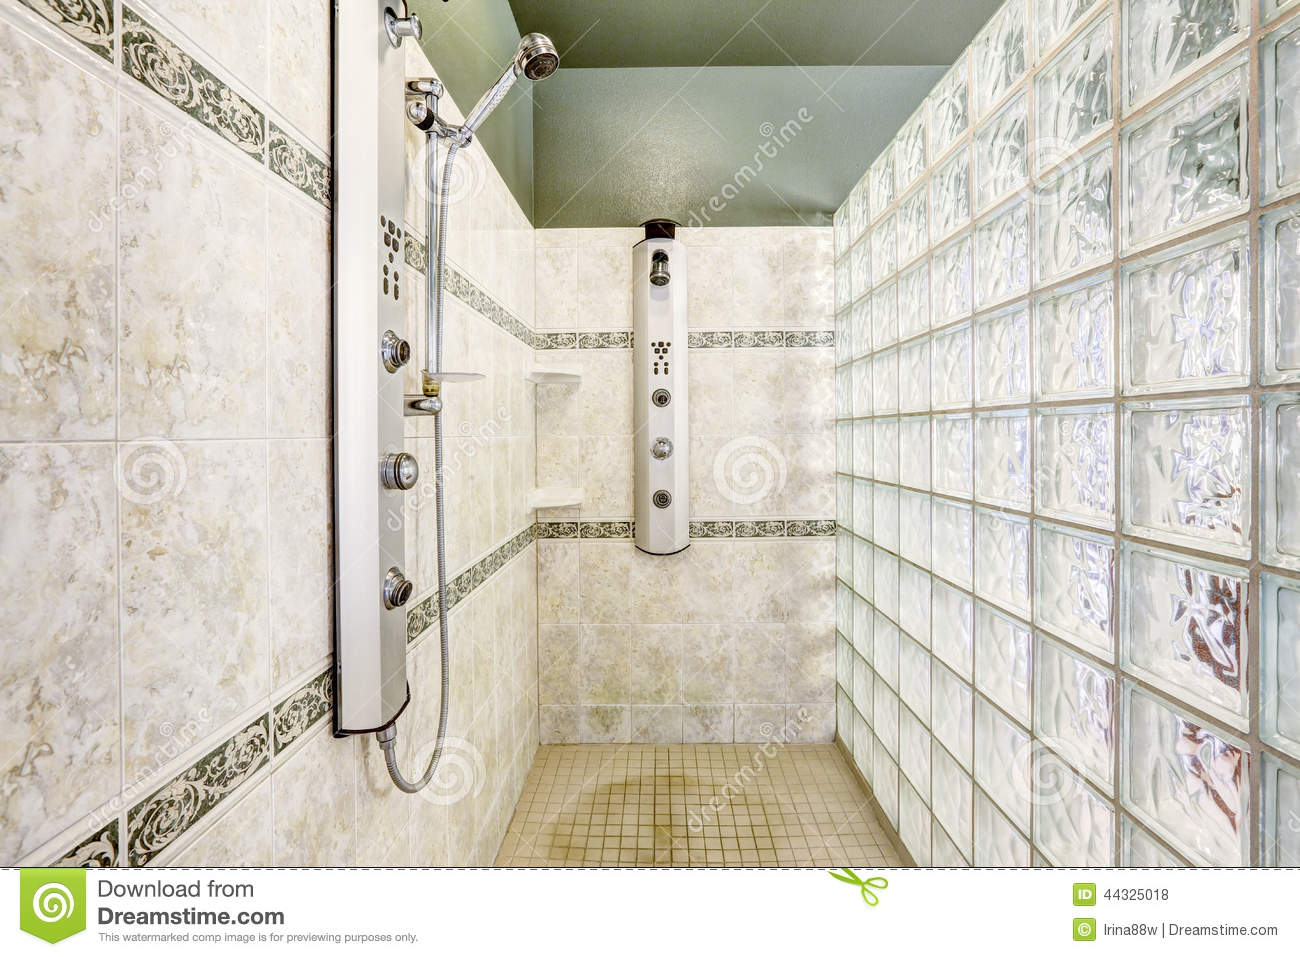 Shower With Glass Block Wall And Tile Trim Stock Photo - Image of ...